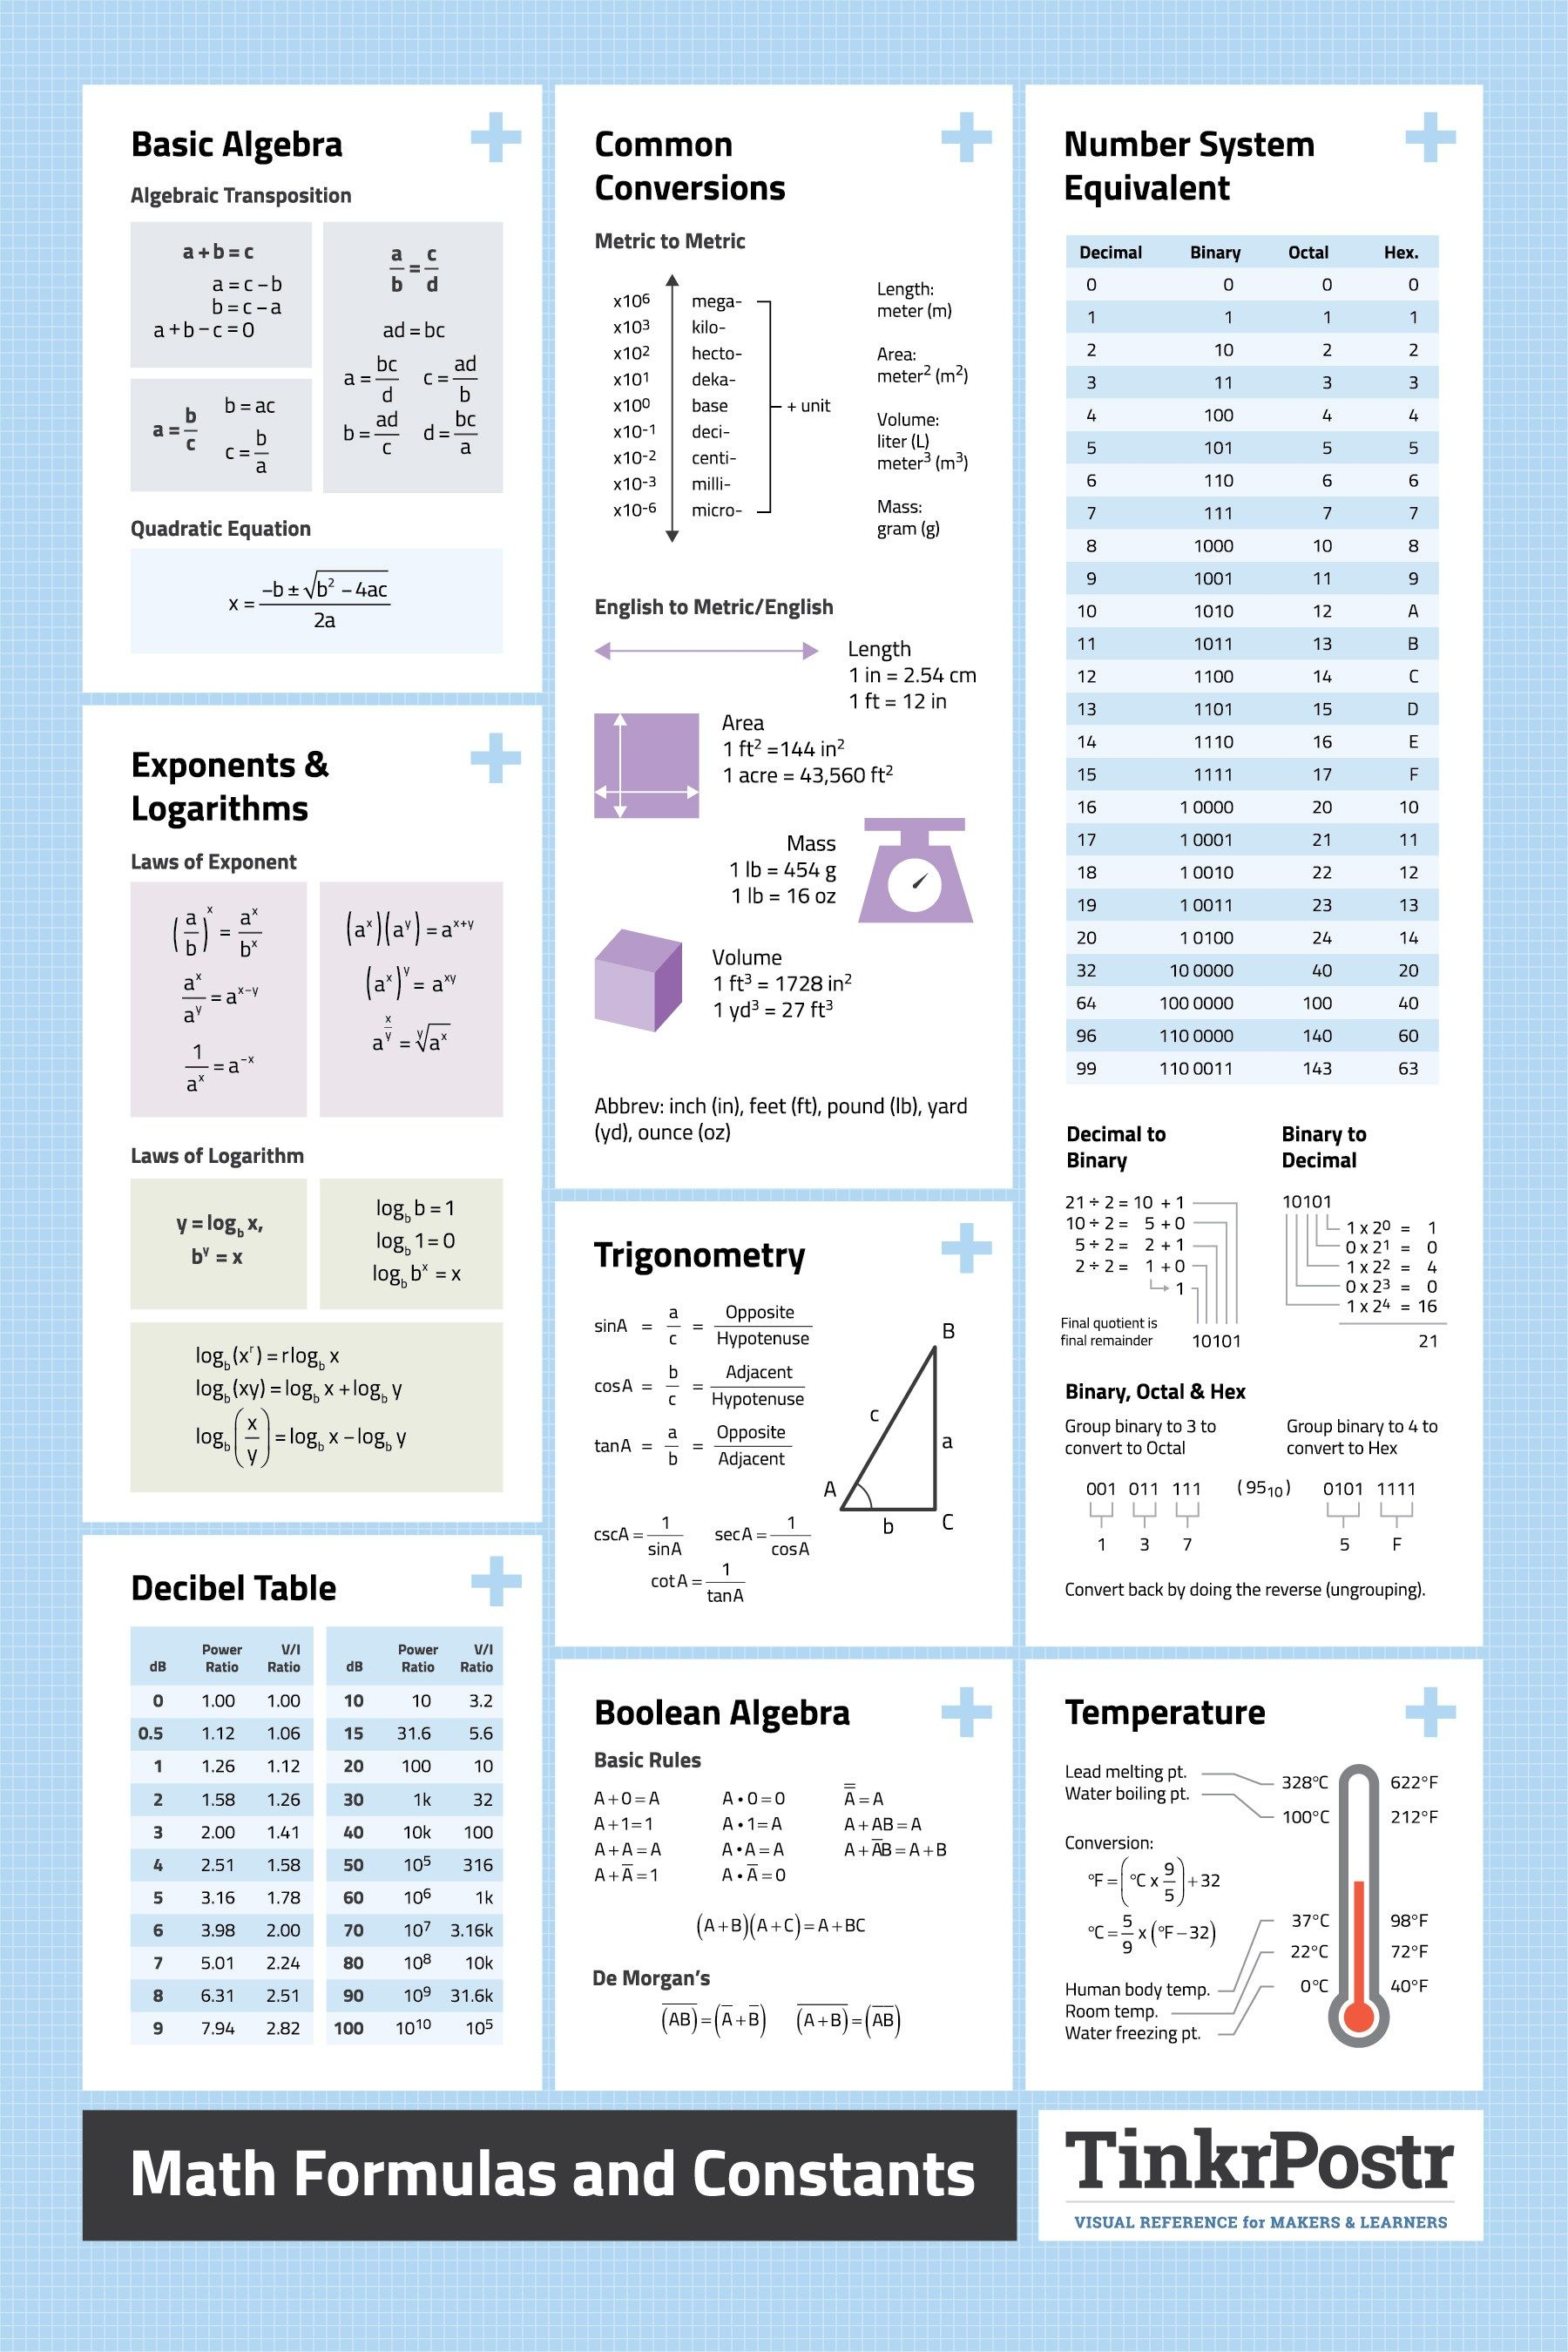 Basic Electrical Formulas Cheat Sheet Science Electricity Review By Wkcheezy Download Free Useful Math Mecanica Pinterest And 1800x2700 Image